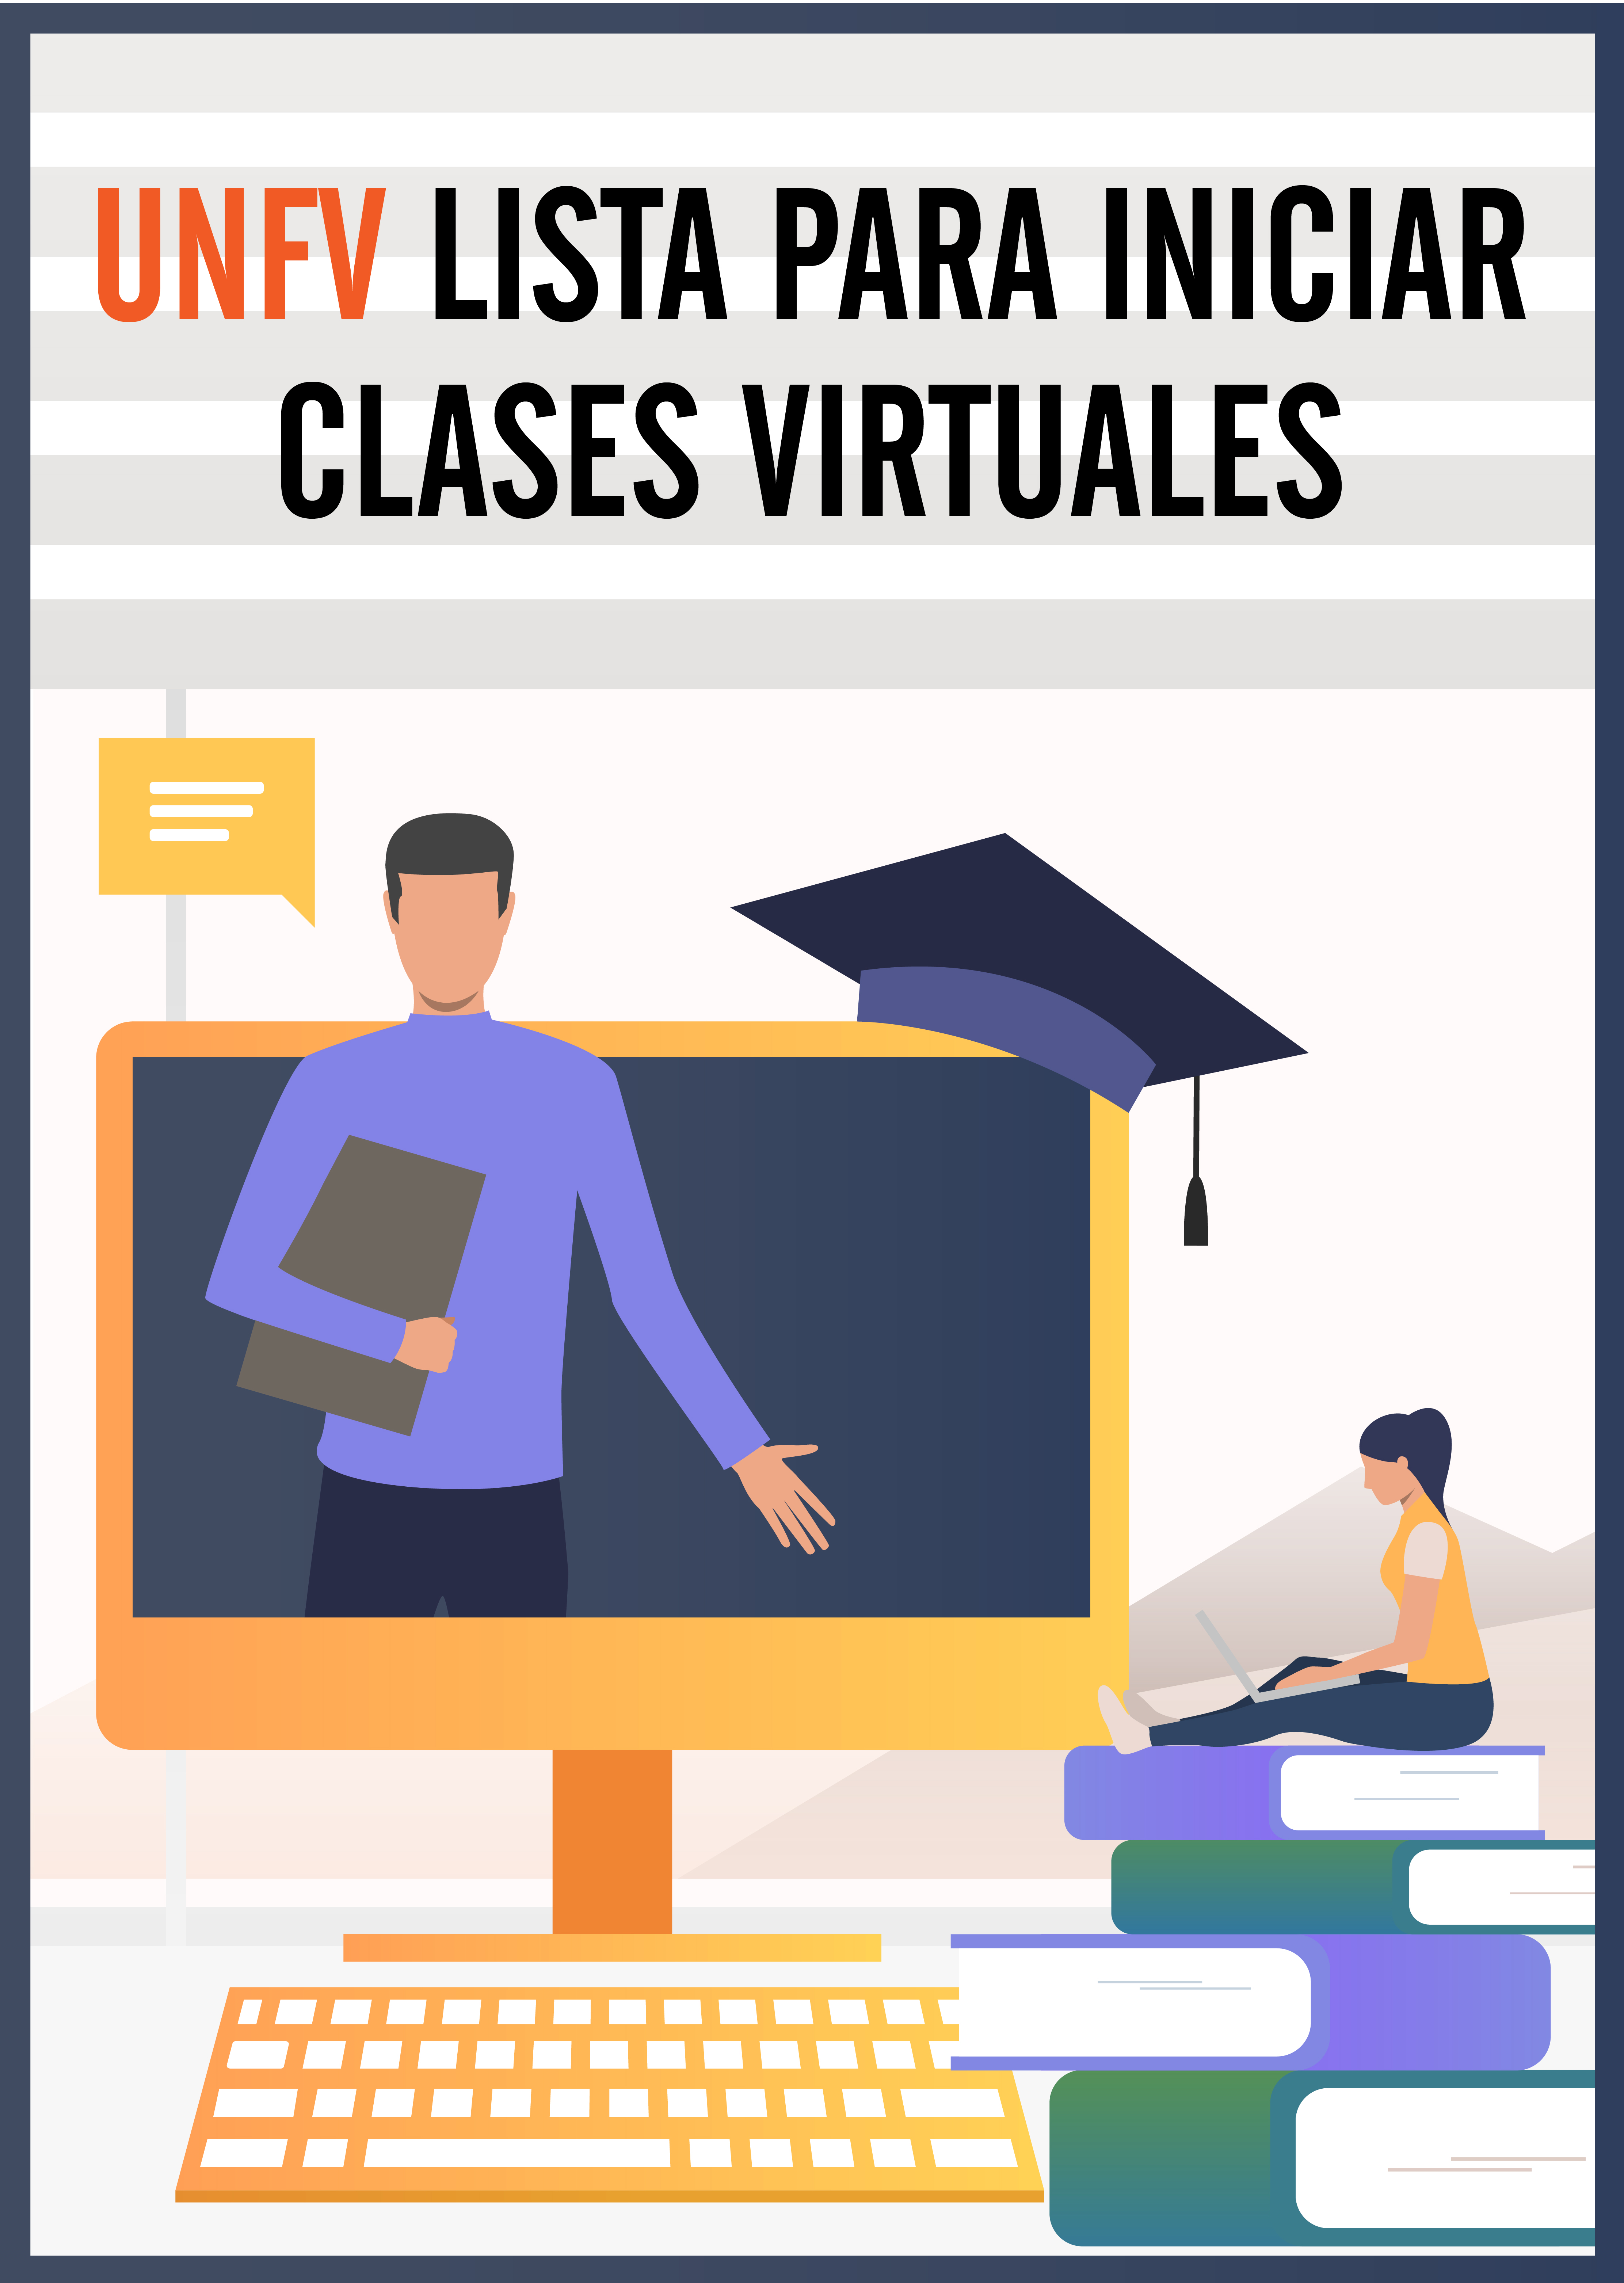 UNFV lista para clases virtuales